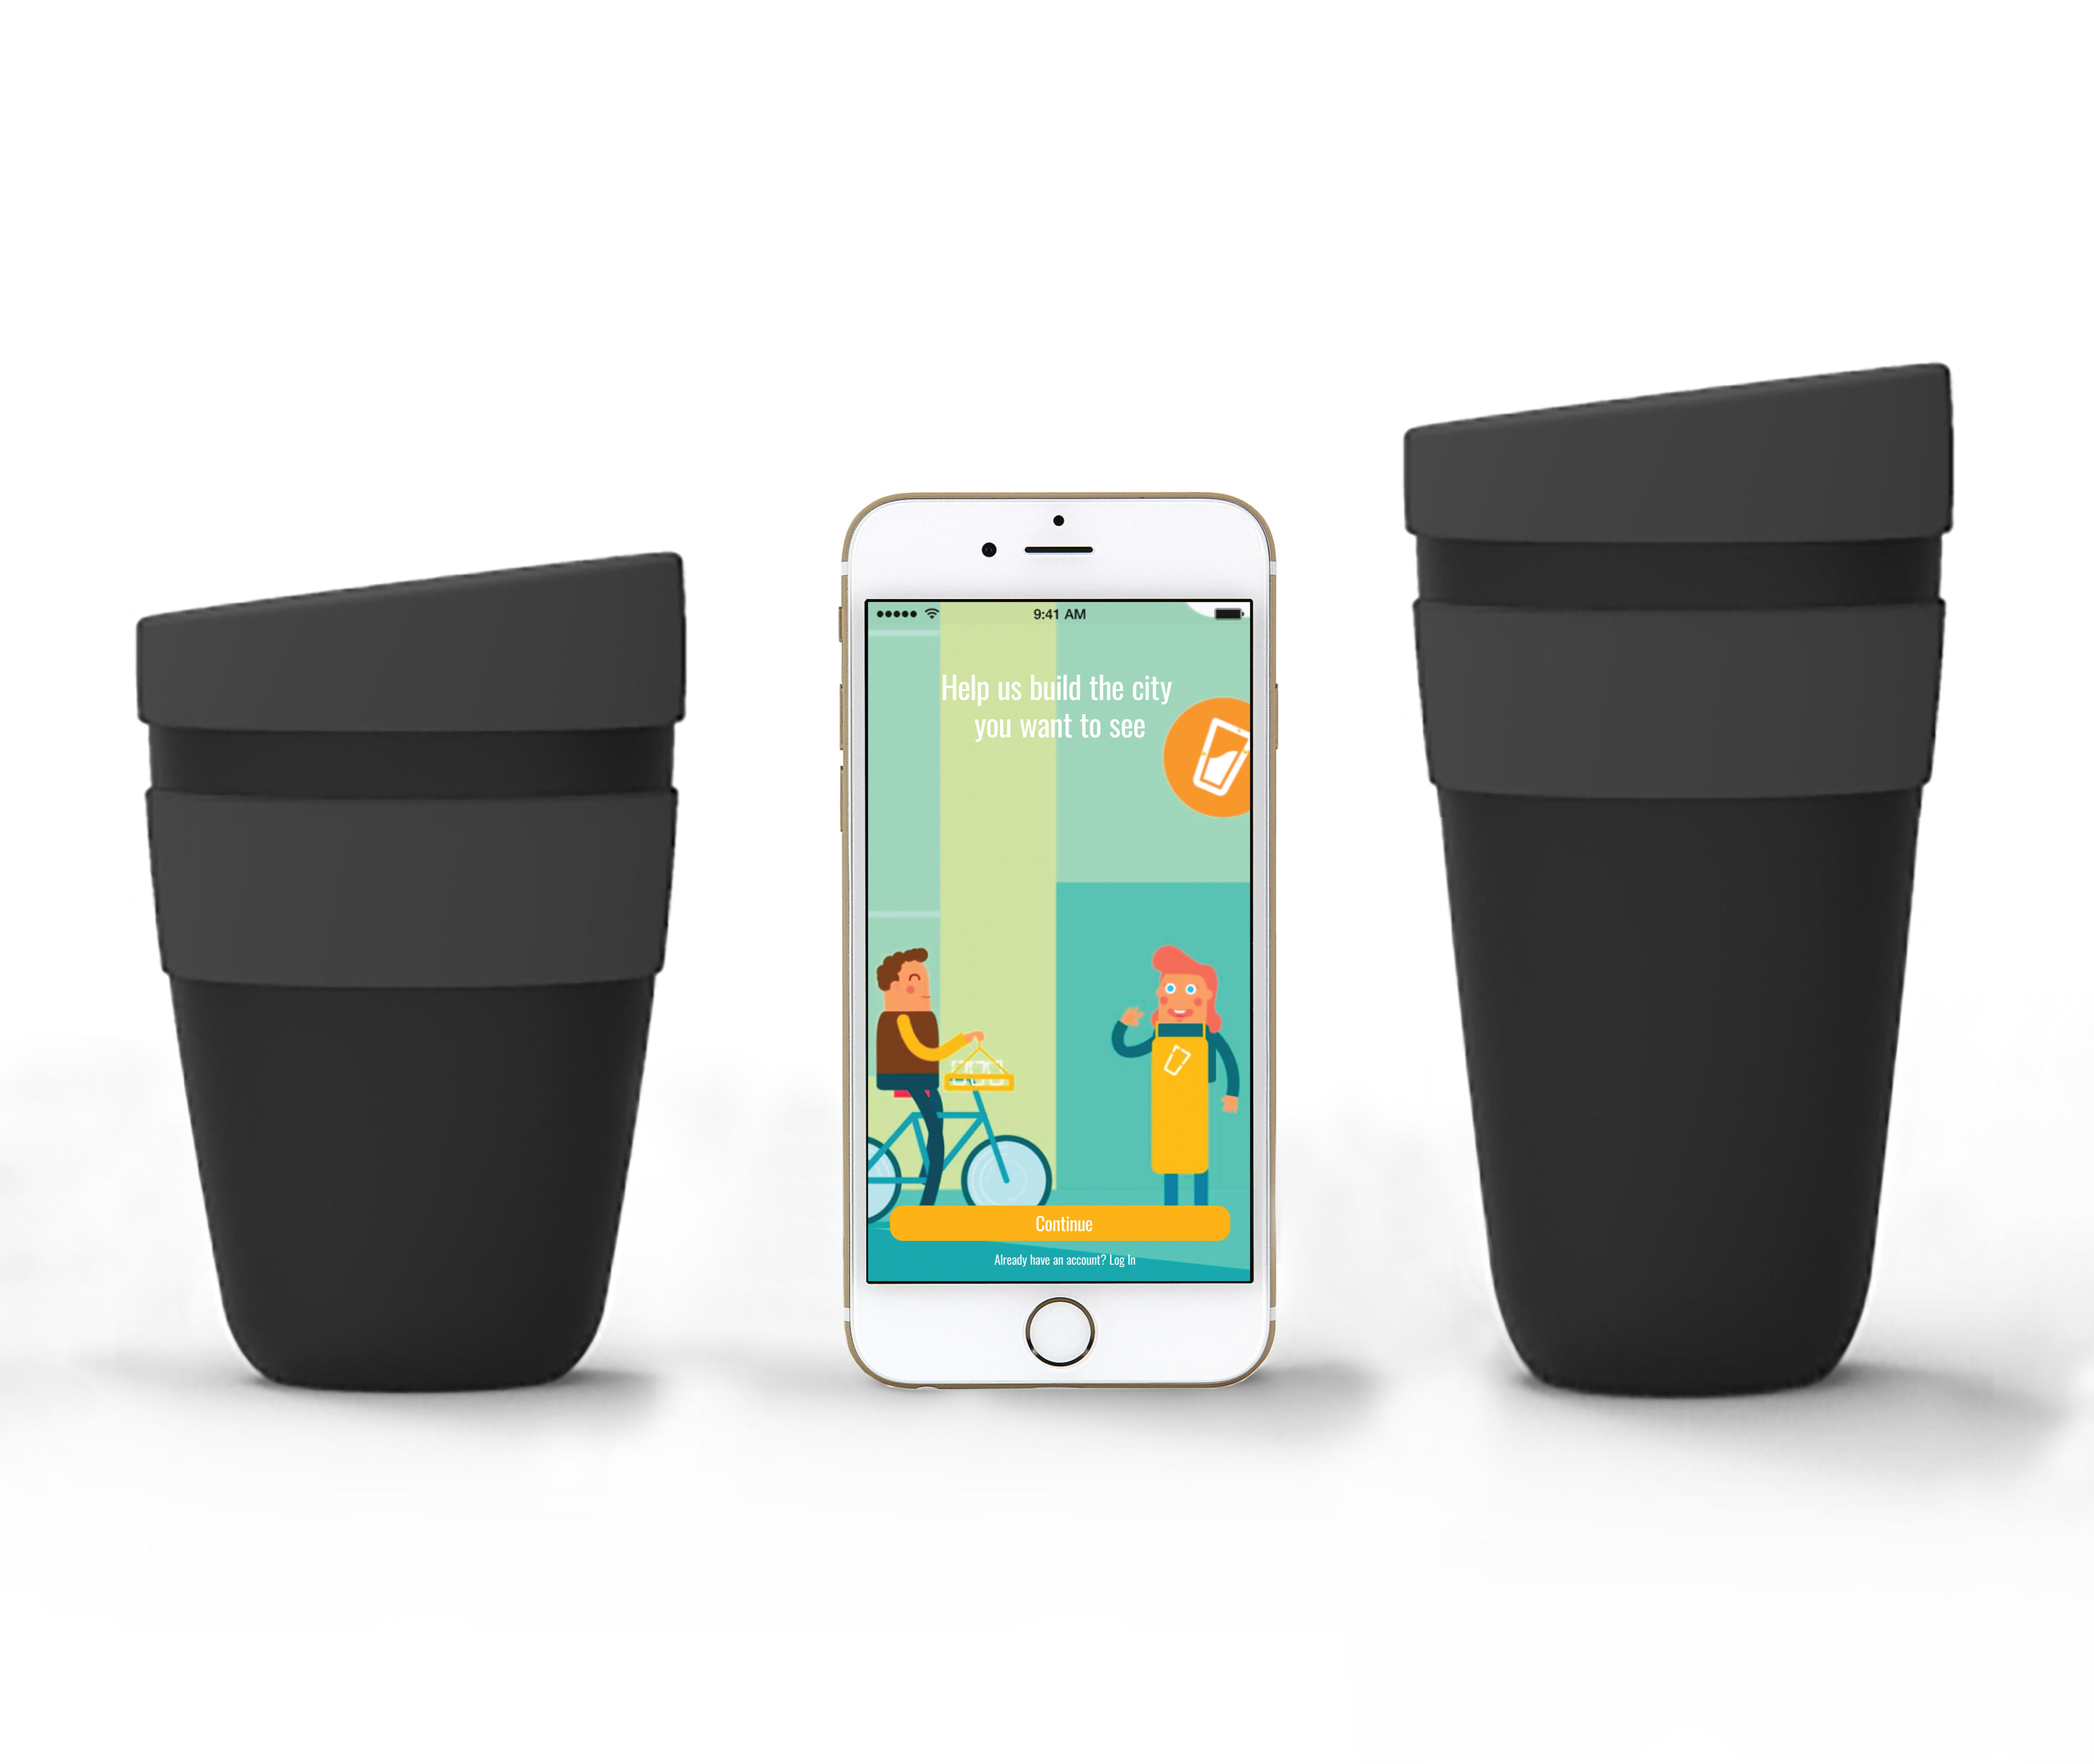 CupClub wants to eliminate billions of single use coffee cups